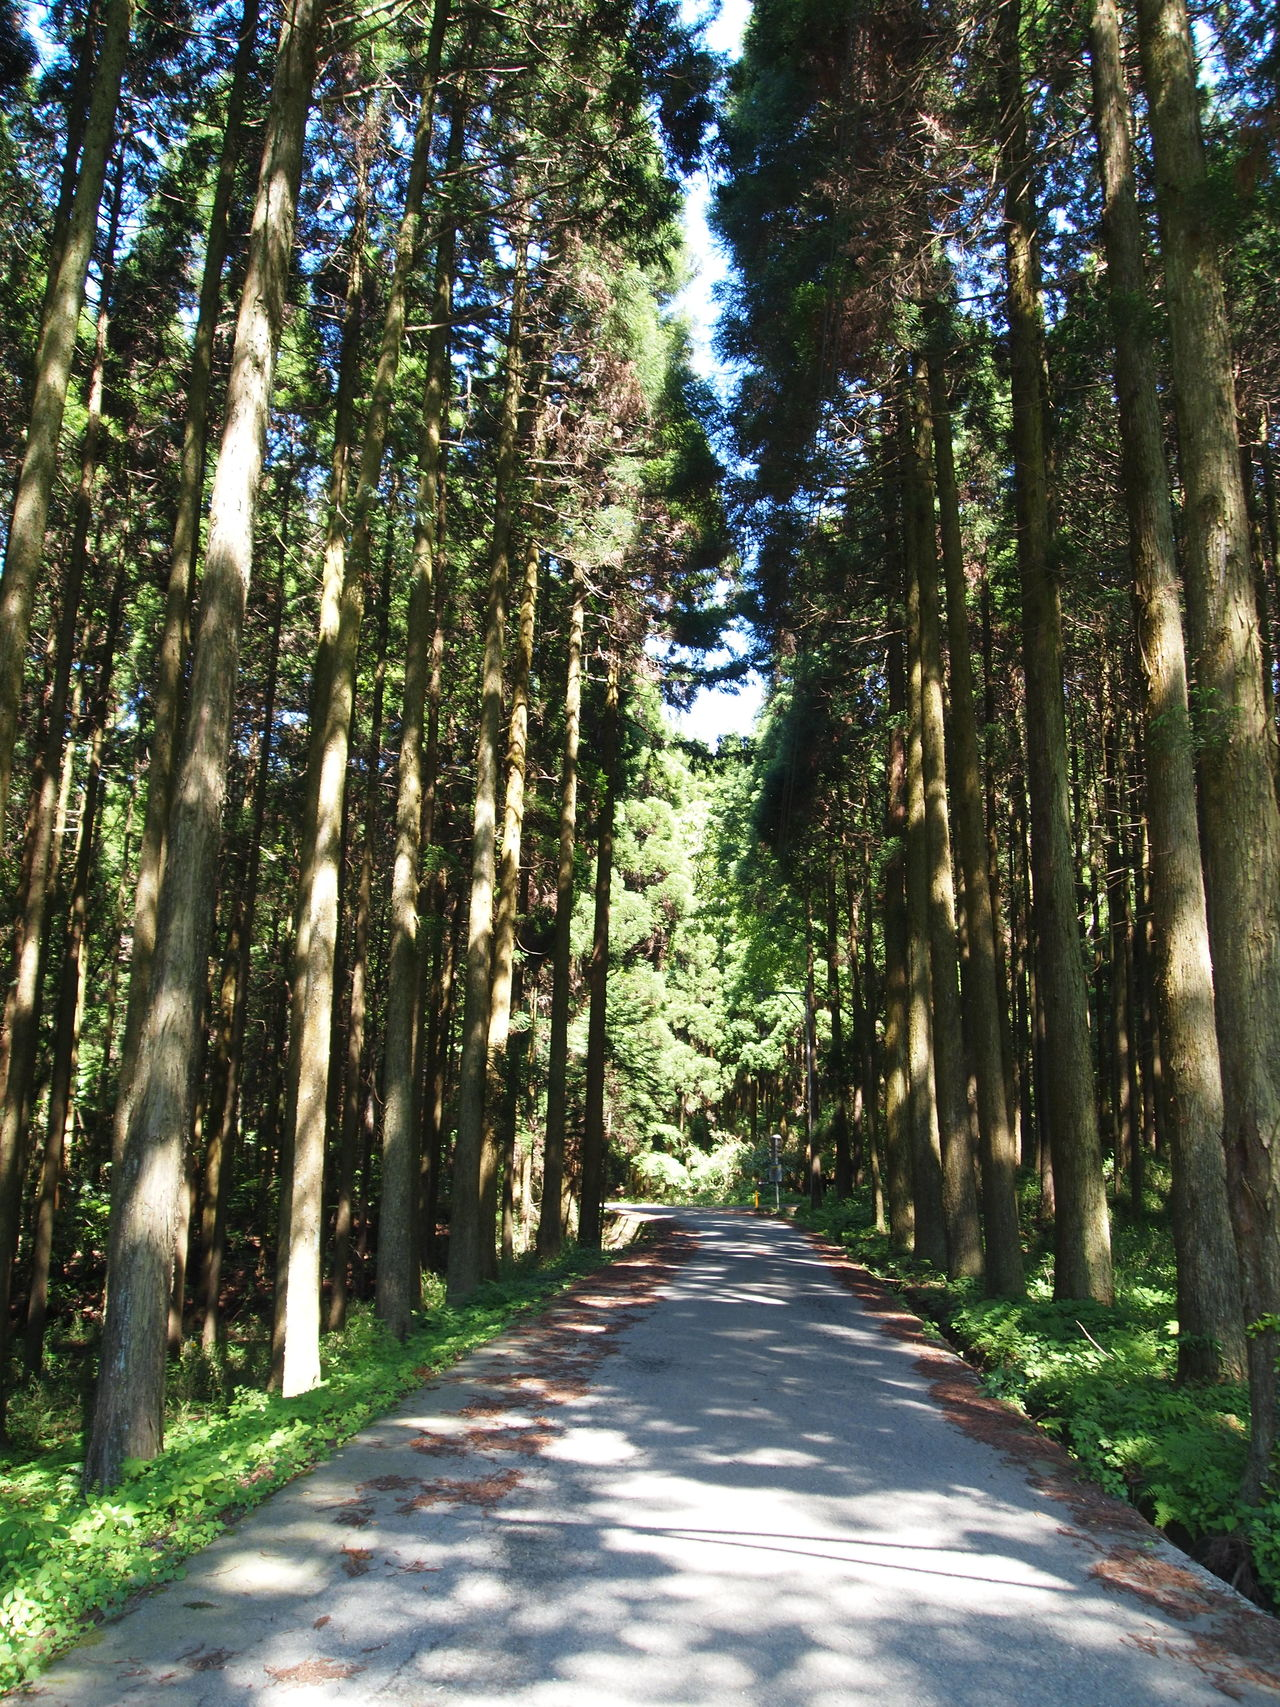 Aso Japa Beauty In Nature Forest Growth Japanese Cedar Nature No People Road The Way Forward Tranquility Tree Tree Trunk